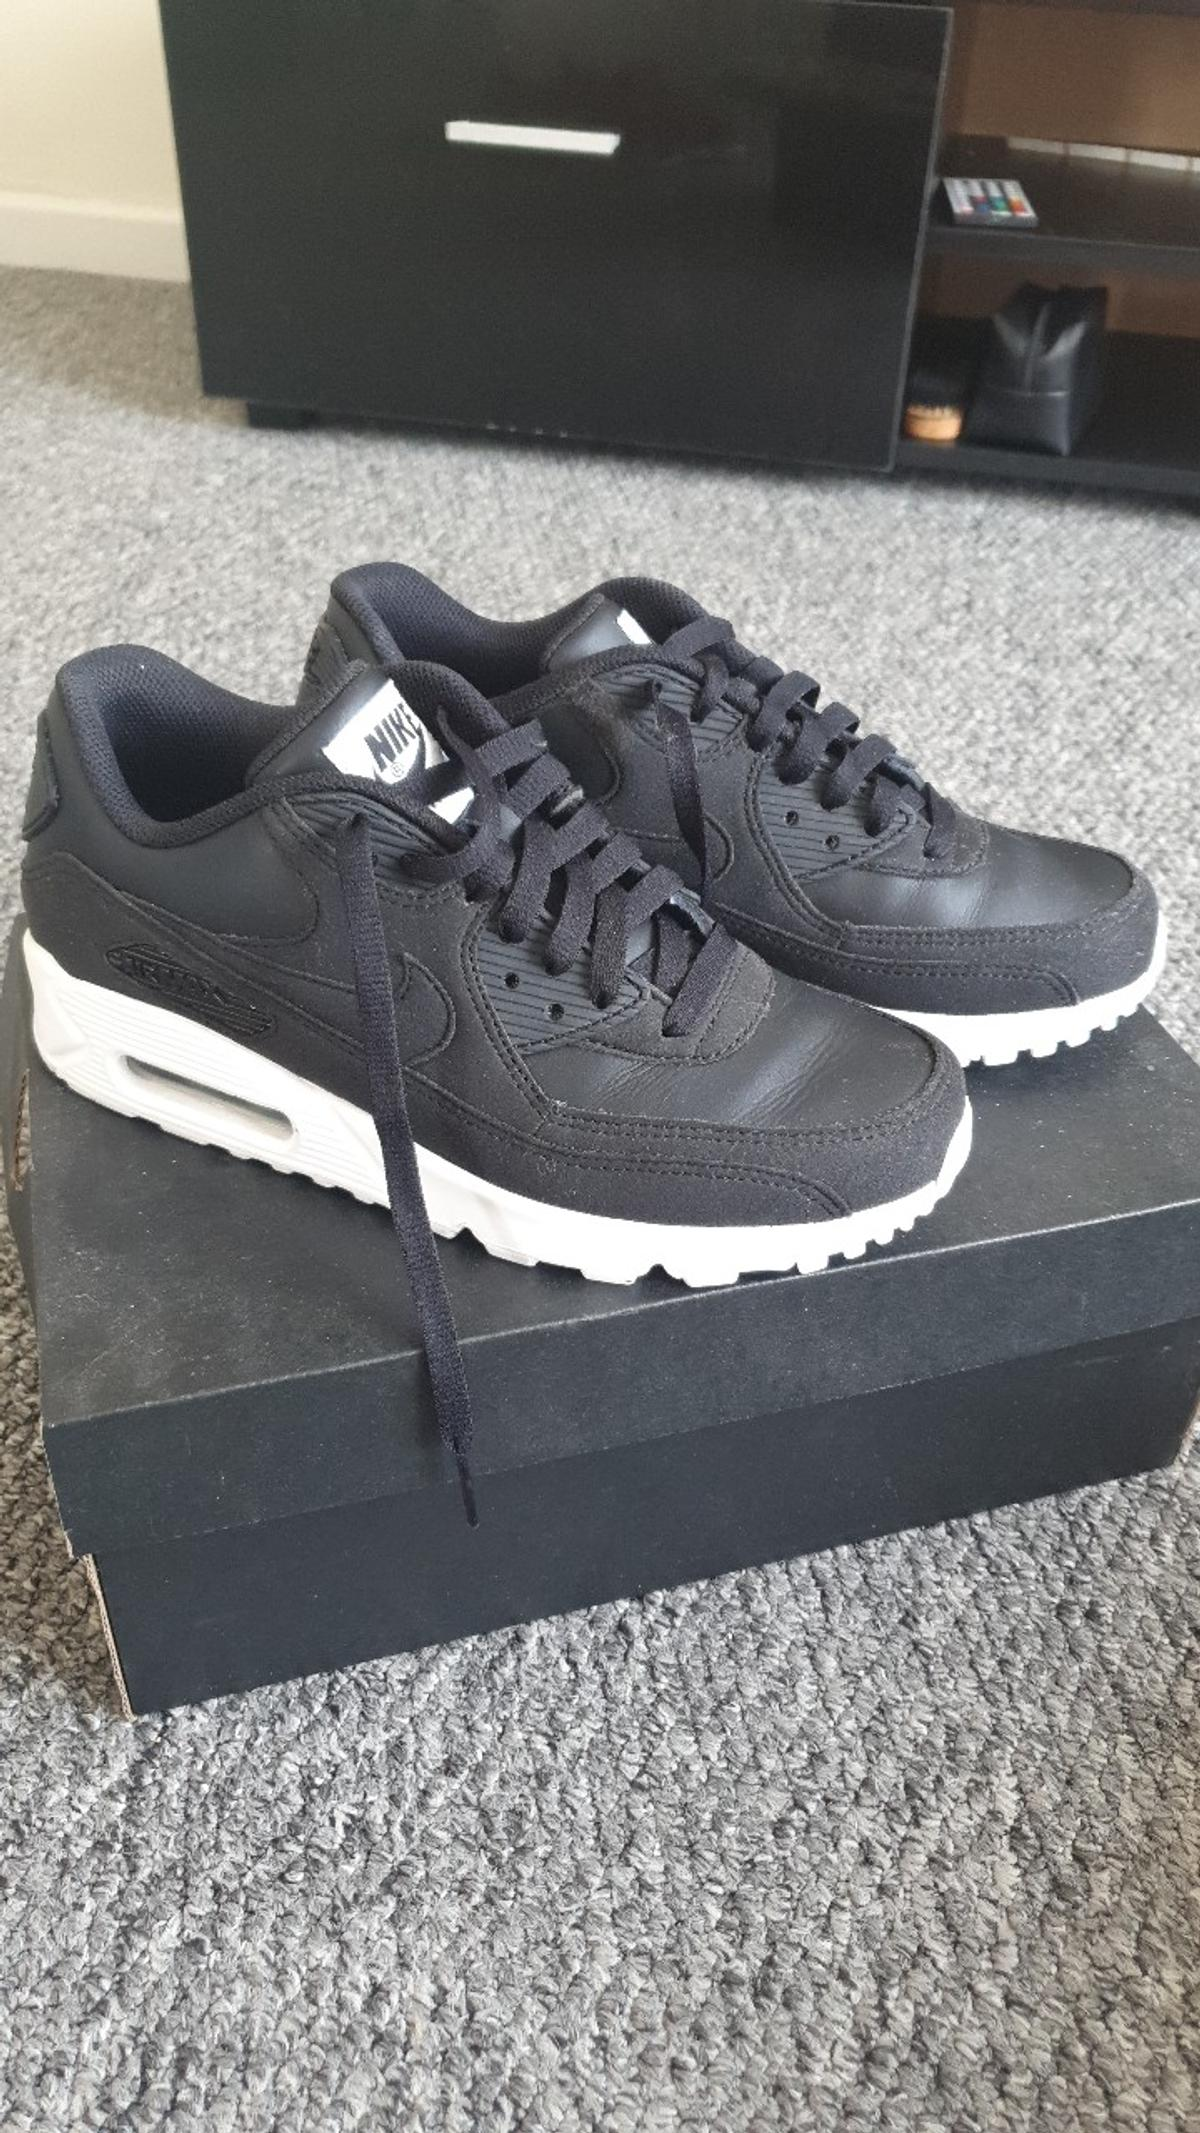 nearly new nike airmax size 5. I custom made them for gym wore them once only. too busy with work hate to sell them but their just sat in a box not been worn would be perfect for someone else. one of kind custom made. open for offers nothing silly